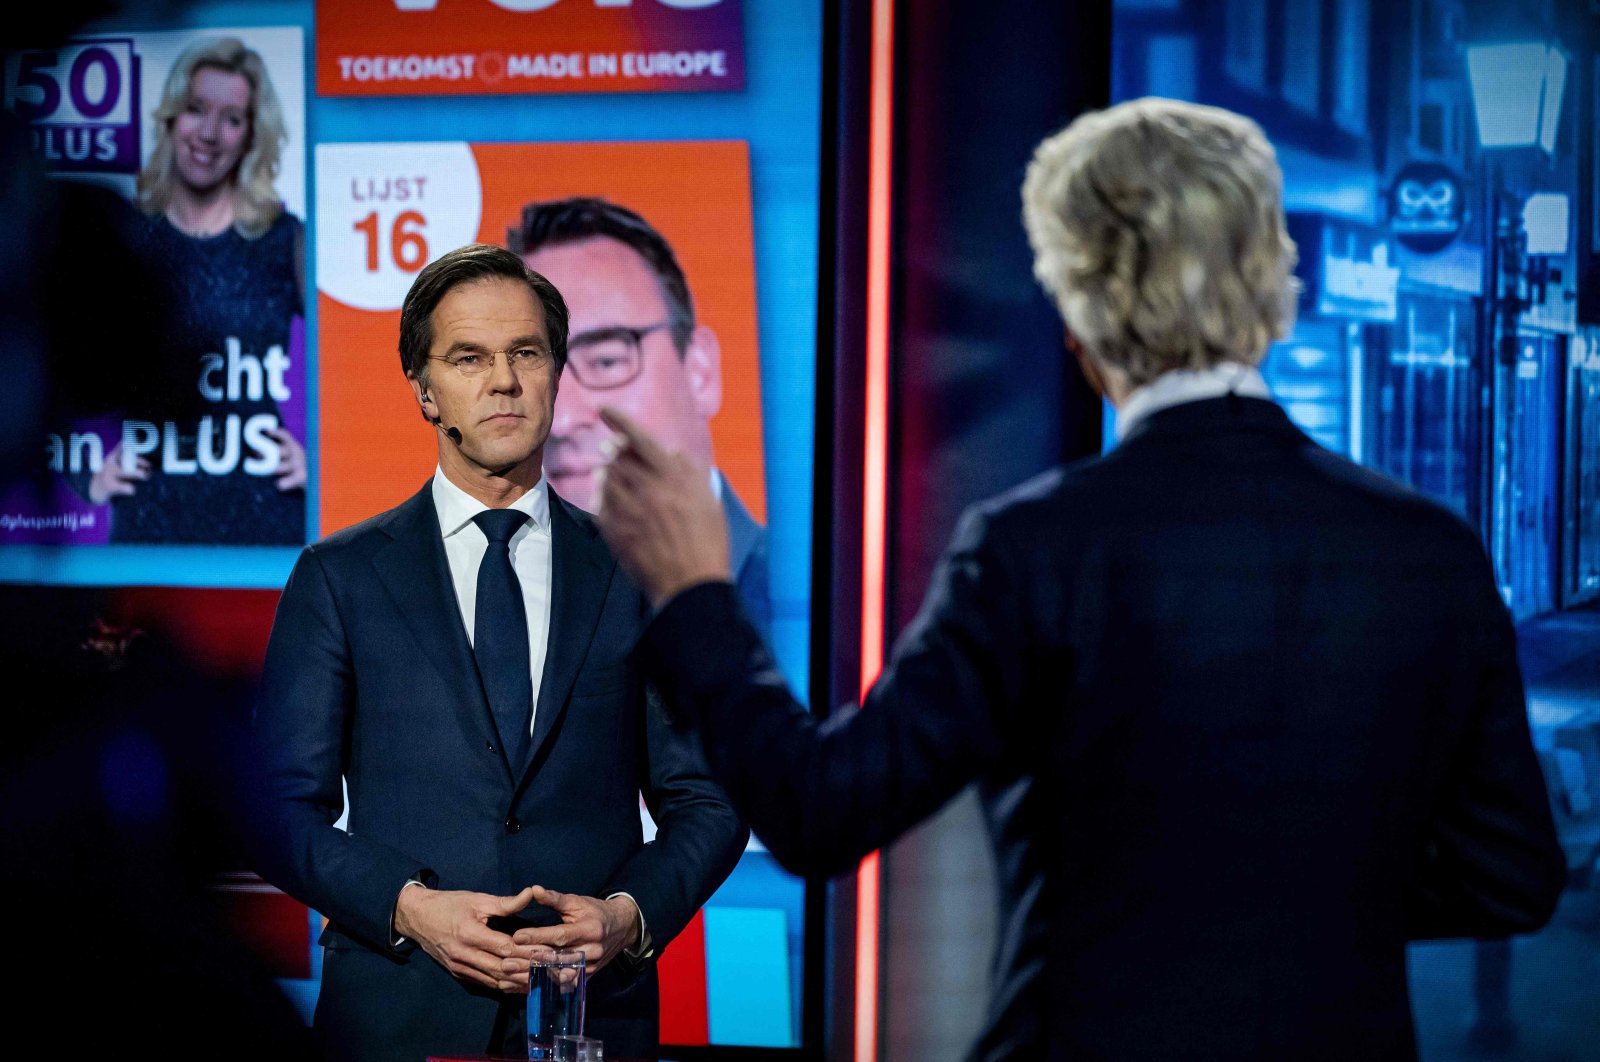 Dutch Prime Minister Mark Rutte (L) of VVD and PVV leader Geert Wilders take part in an election debate over the public broadcast corporation NOS, Netherlands, March 16, 2021. (AFP)